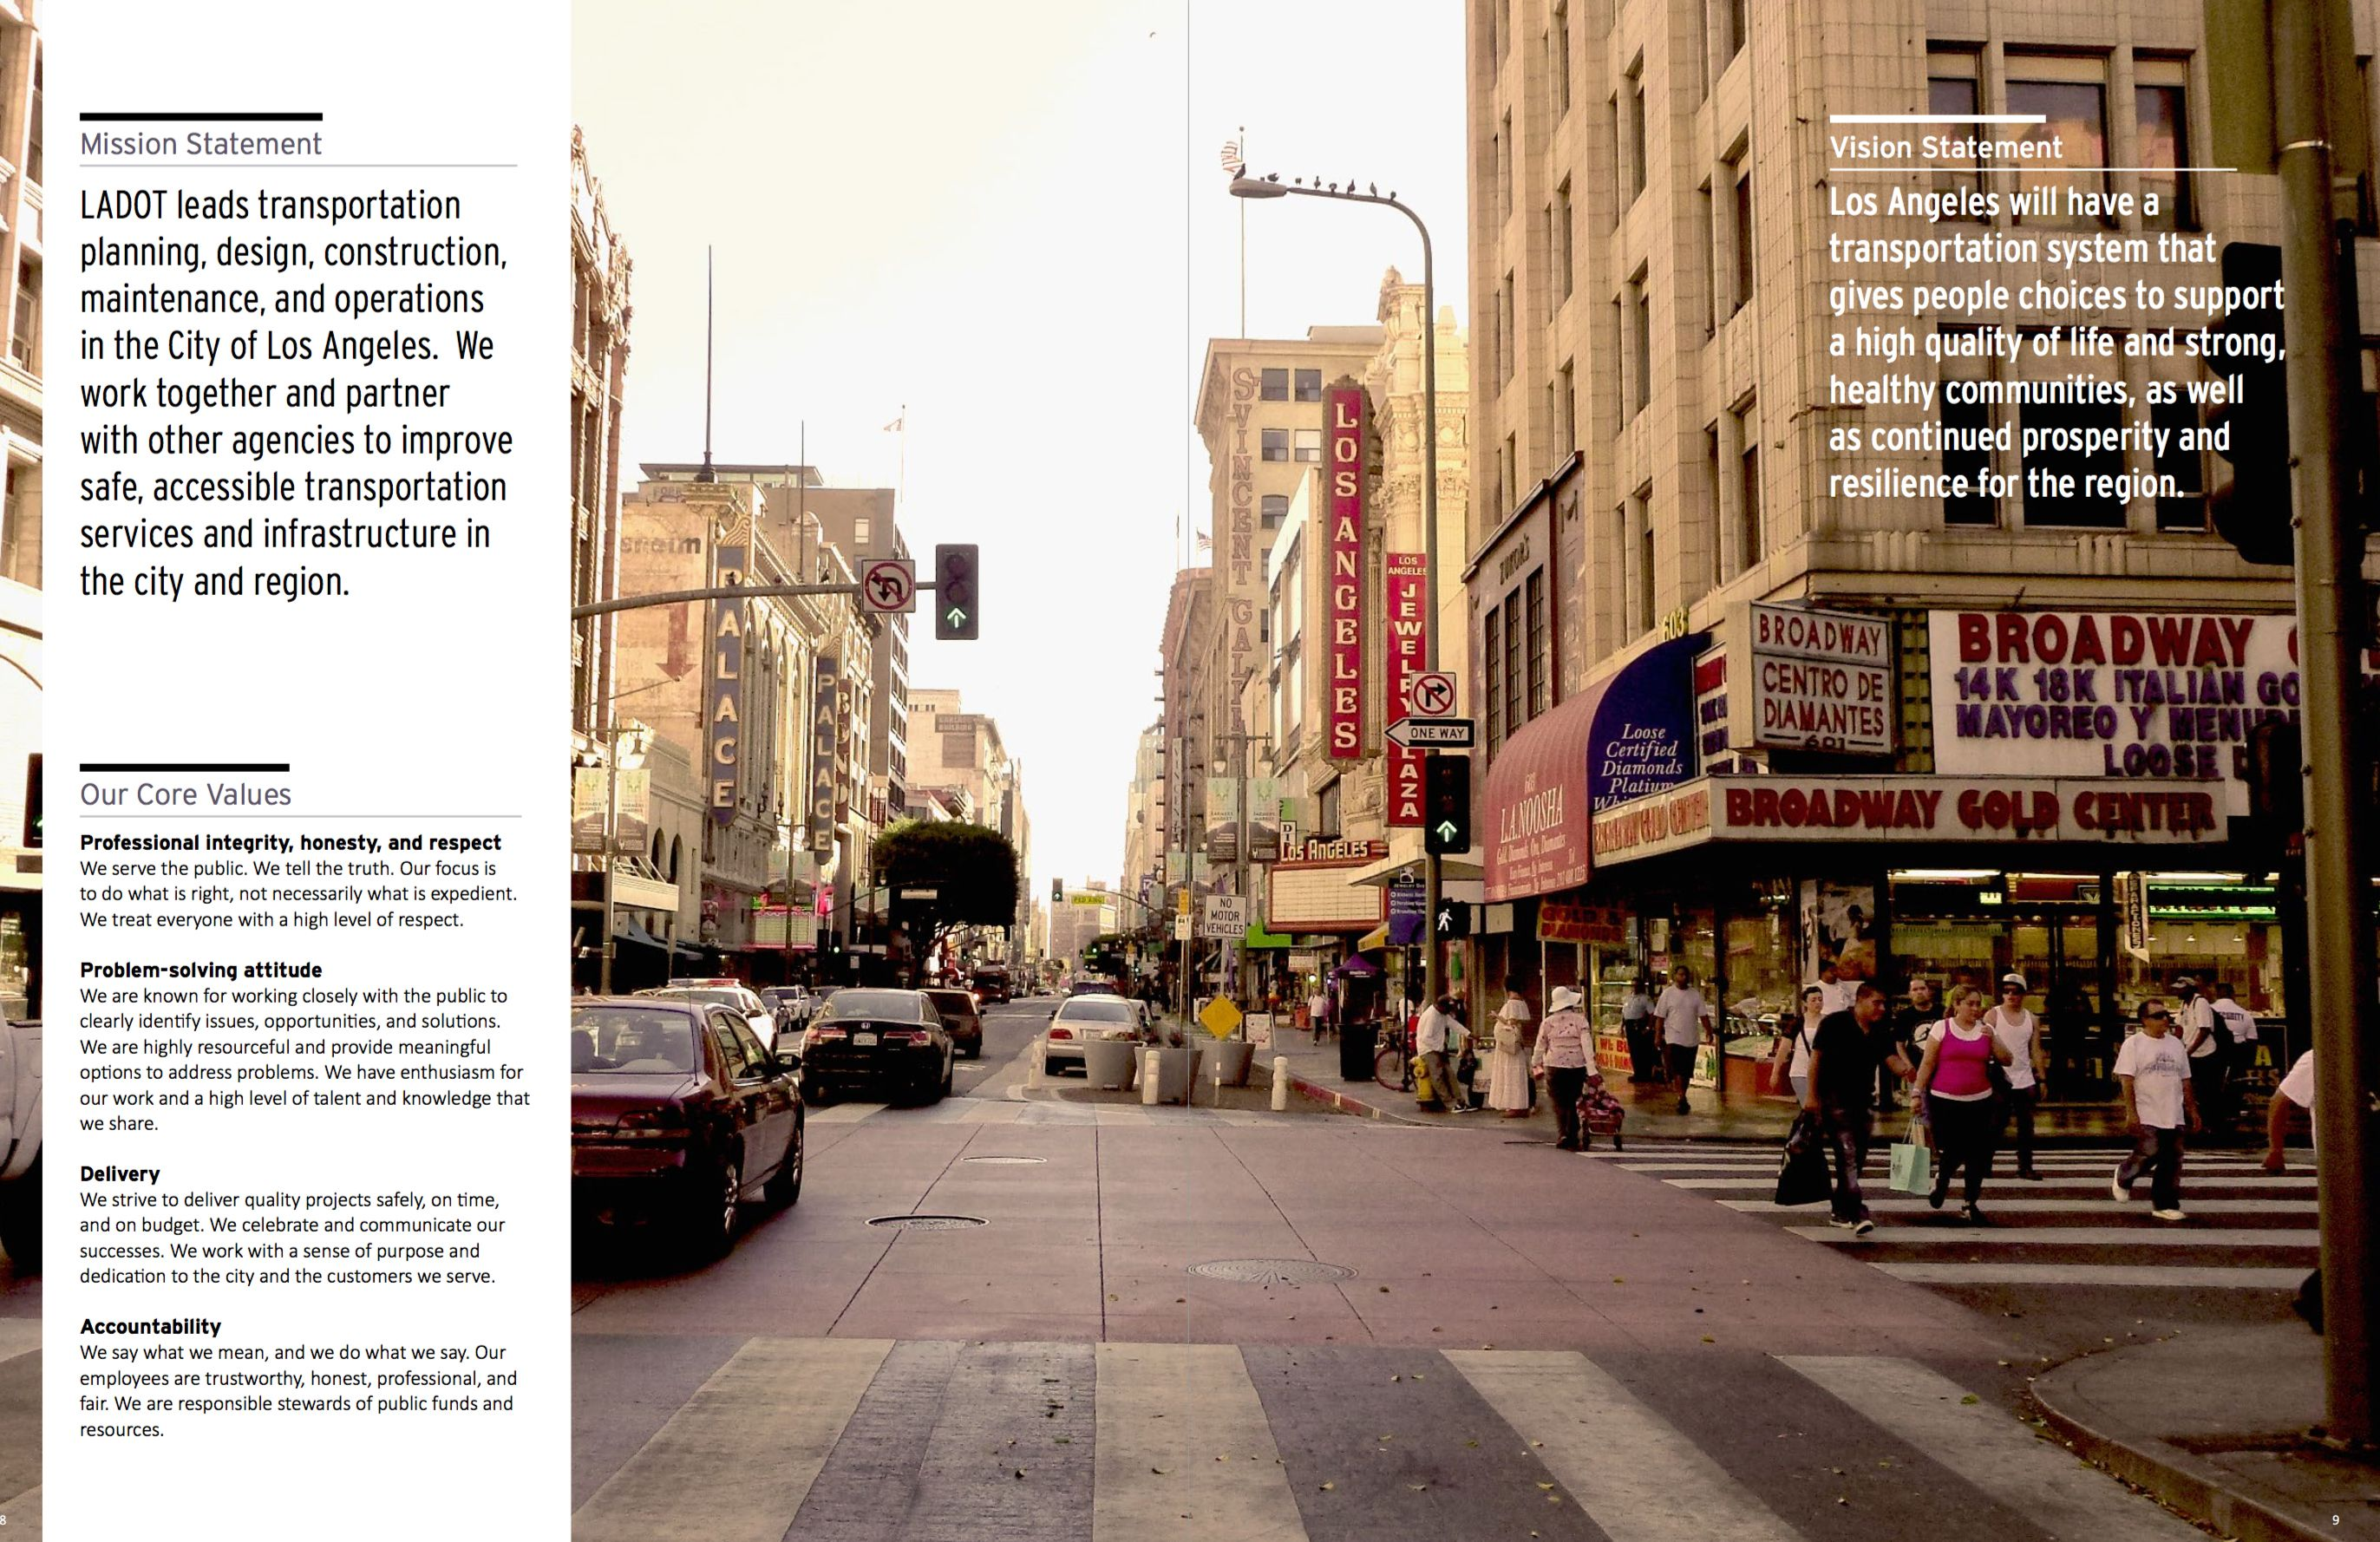 Layout with some text but image is the central focus